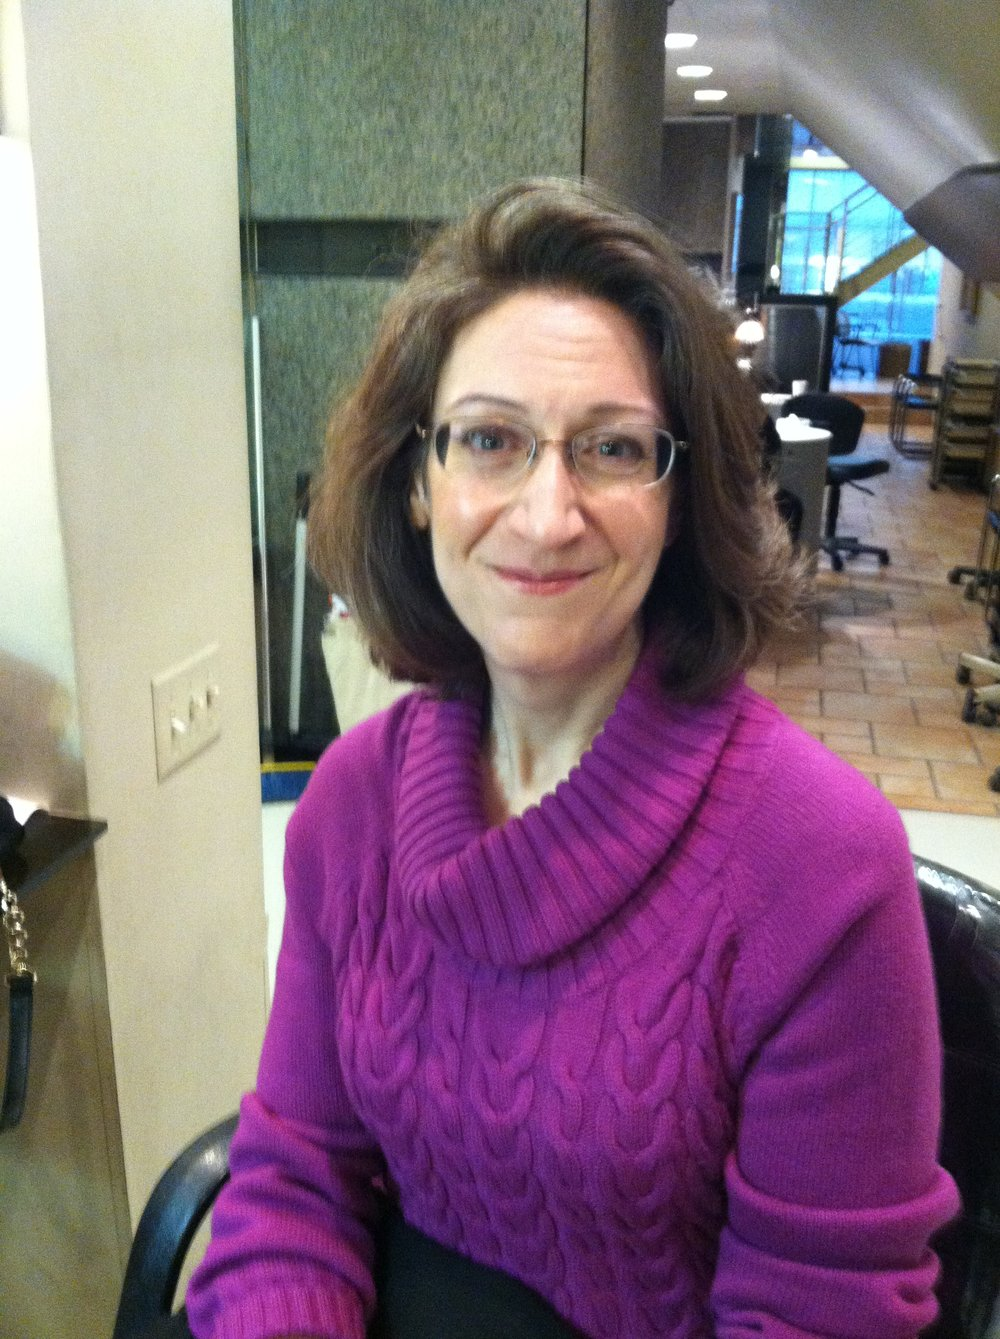 Laura Leibowitz   I have lived in the Montclair area since 1997, and hope to stay for a good, long time. I am an independent Project Management consultant, so the location is great for commuting to clients in many parts of the Bay Area. Being a supporter of the arts from the San Francisco Symphony to the Urban Institute for Contemporary Arts, I appreciate Oakland's ability to mix the best of so many worlds: multicultural, traditional, edgy, urban, and rural. It is wonderful to work with this team to help Montclair rise into its rightful place among the gems of Oakland neighborhoods.